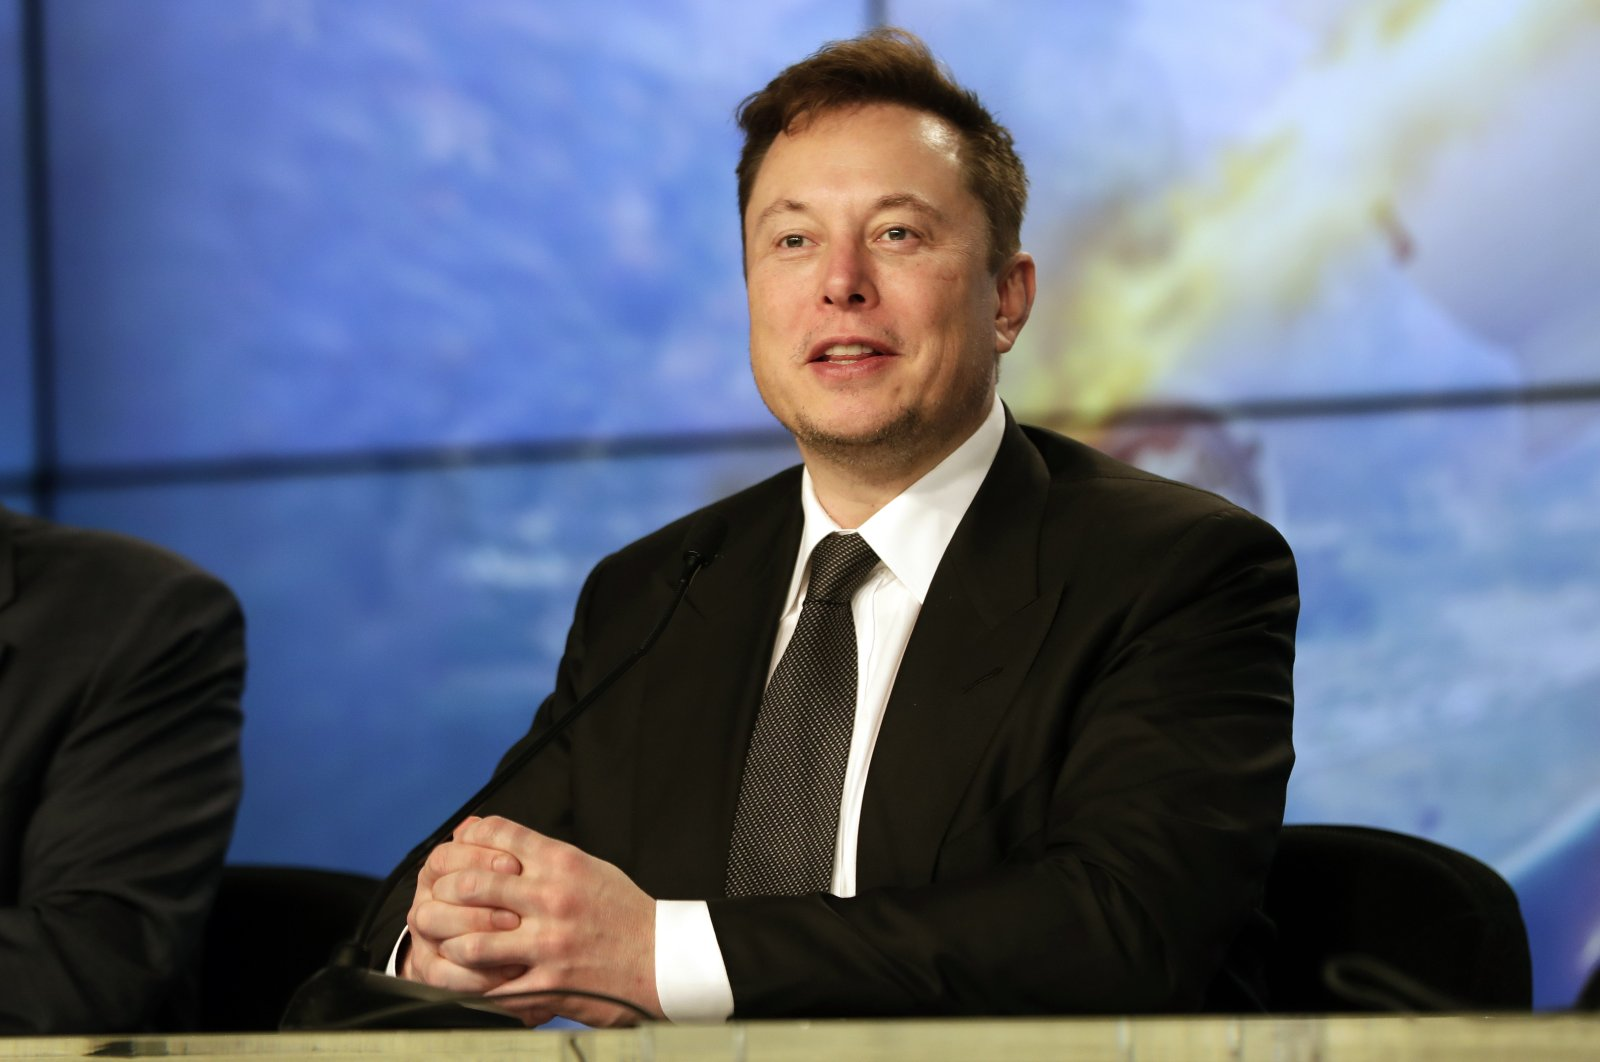 Elon Musk, founder, CEO and chief engineer and designer of SpaceX, speaks during a news conference after a Falcon 9 SpaceX rocket test flight, in the U.S. state of Florida, Jan. 19, 2020. (AP Photo)